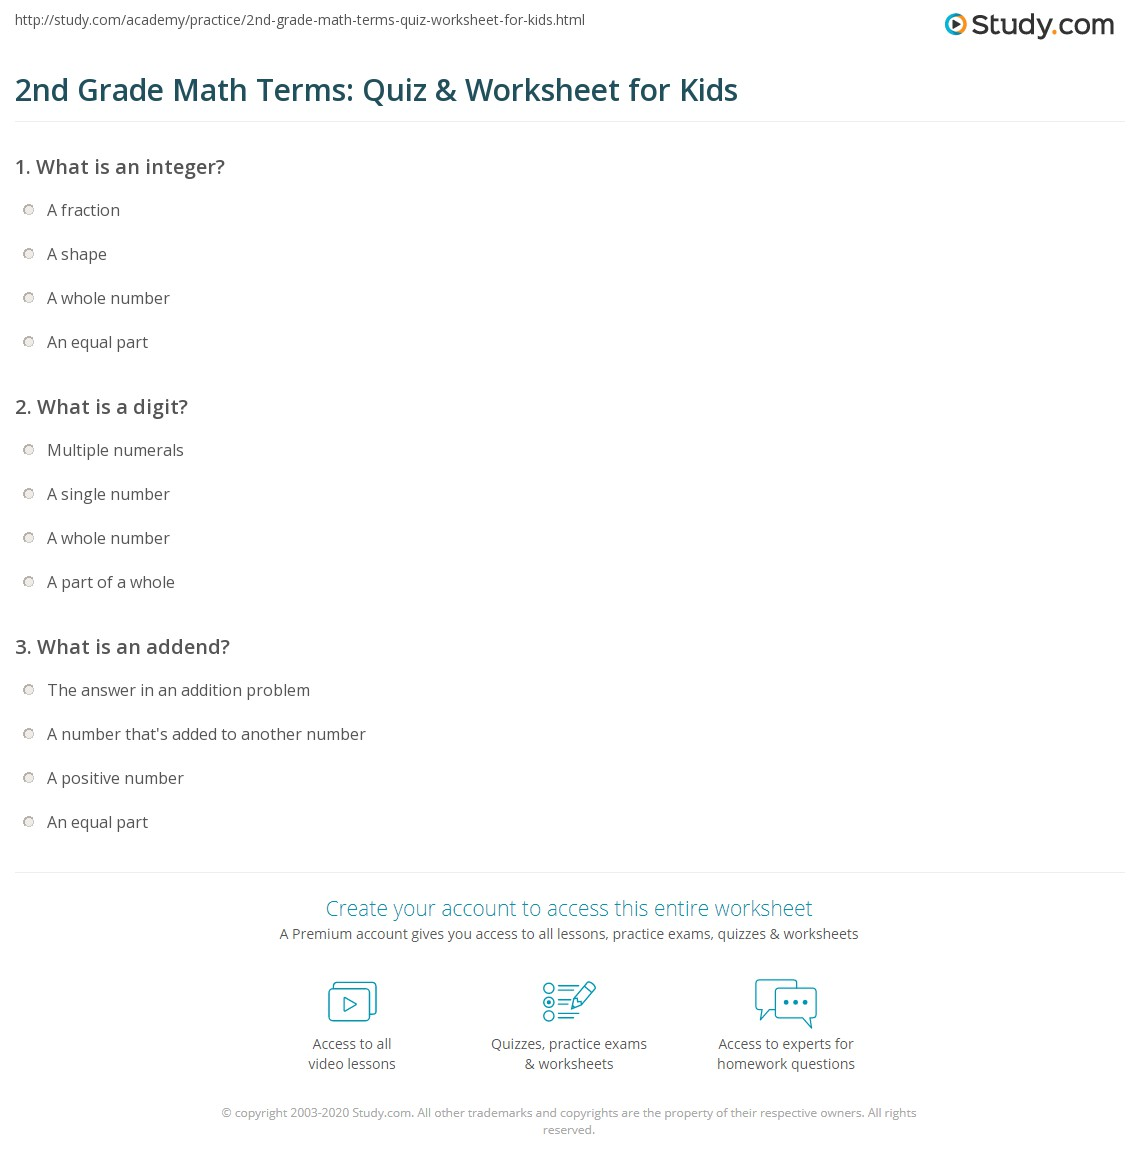 2nd Grade Math Terms Quiz Amp Worksheet For Kids